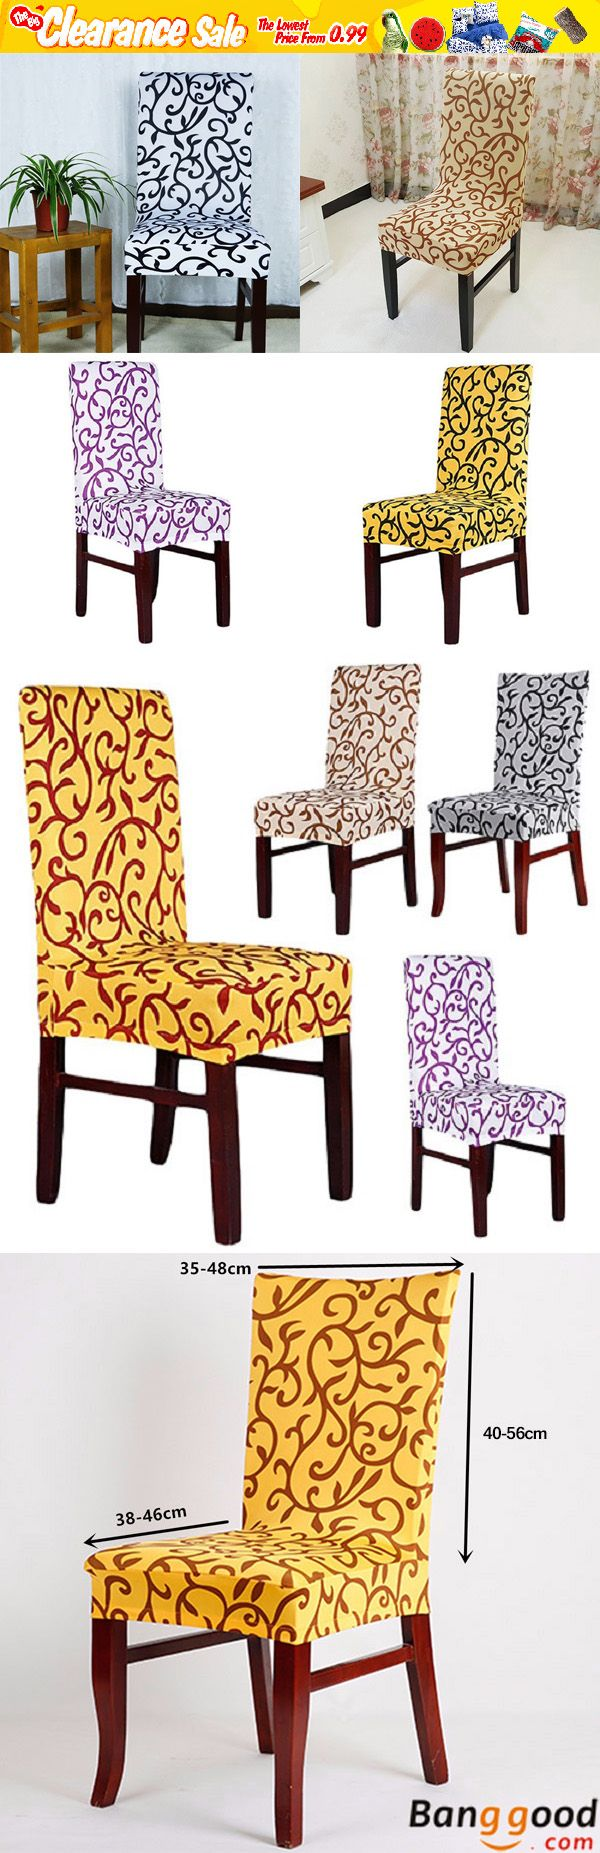 best 25 dining chair seat covers ideas on pinterest chair seat honana wx 912 elegant spandex elastic stretch chair seat cover computer dining room wedding decor